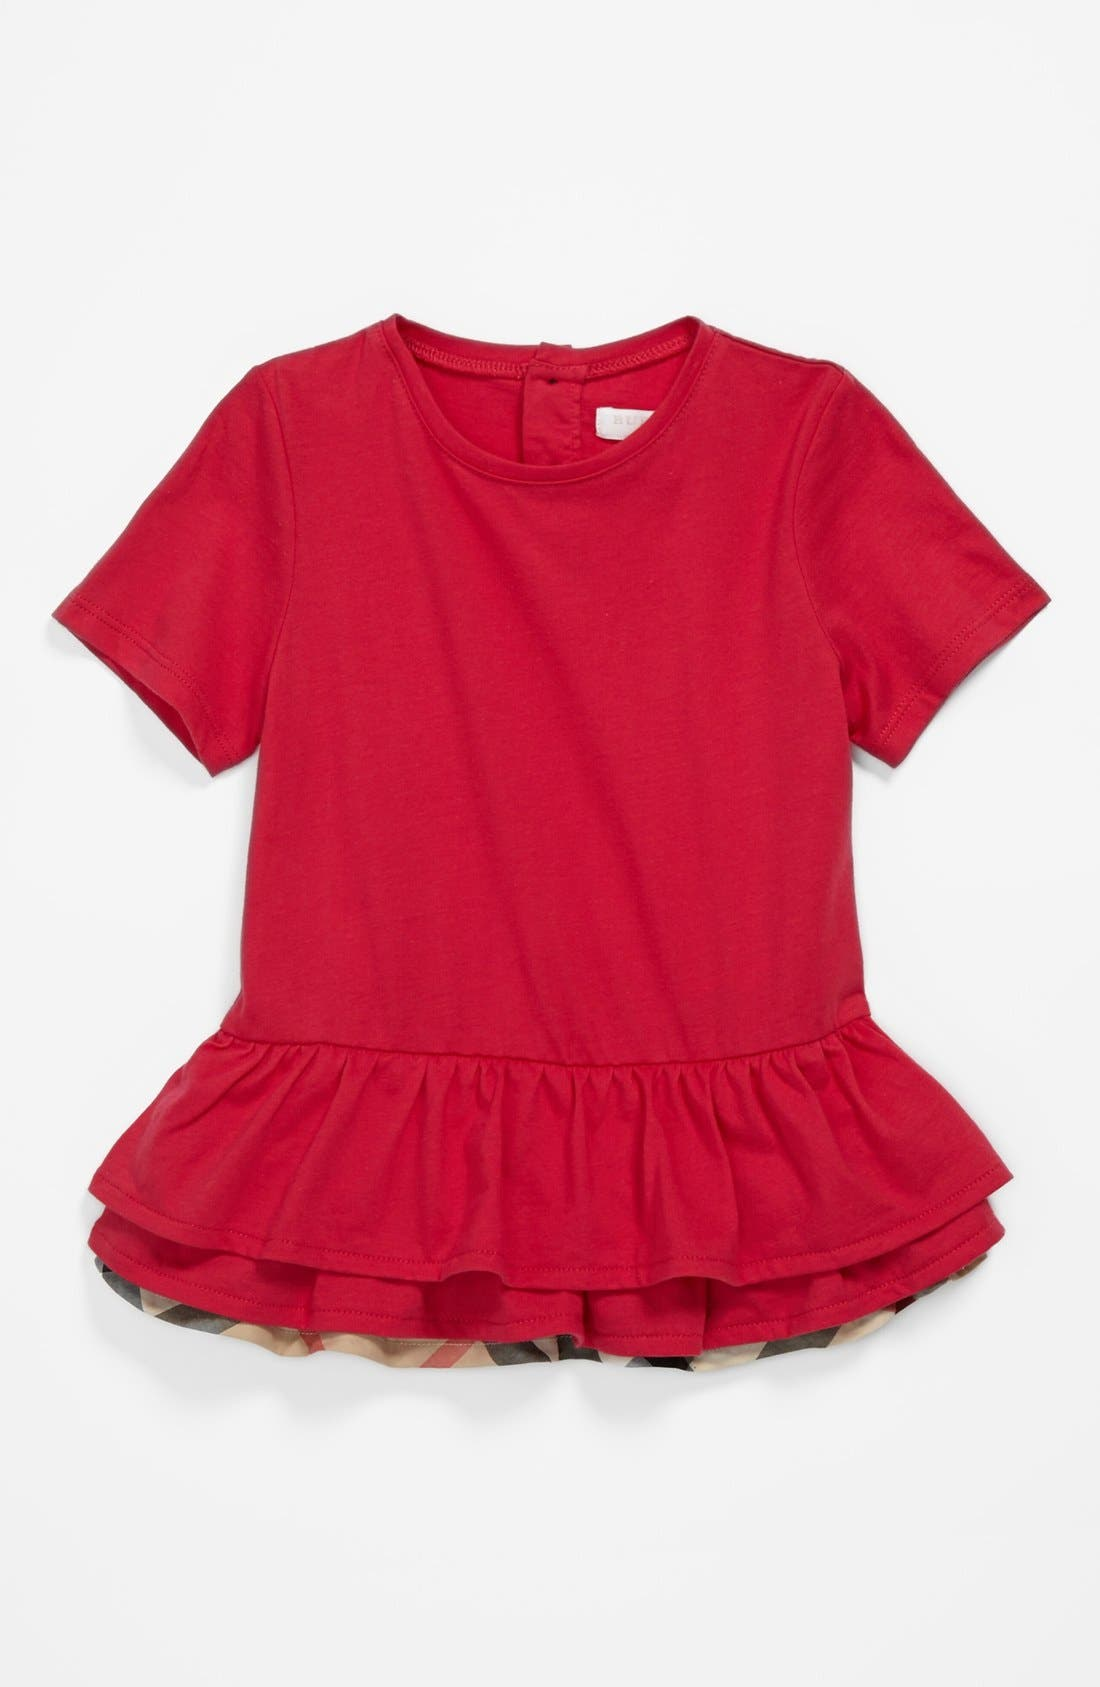 Alternate Image 1 Selected - Burberry 'Mini Tyna' Tiered Ruffle Hem Top (Baby Girls)